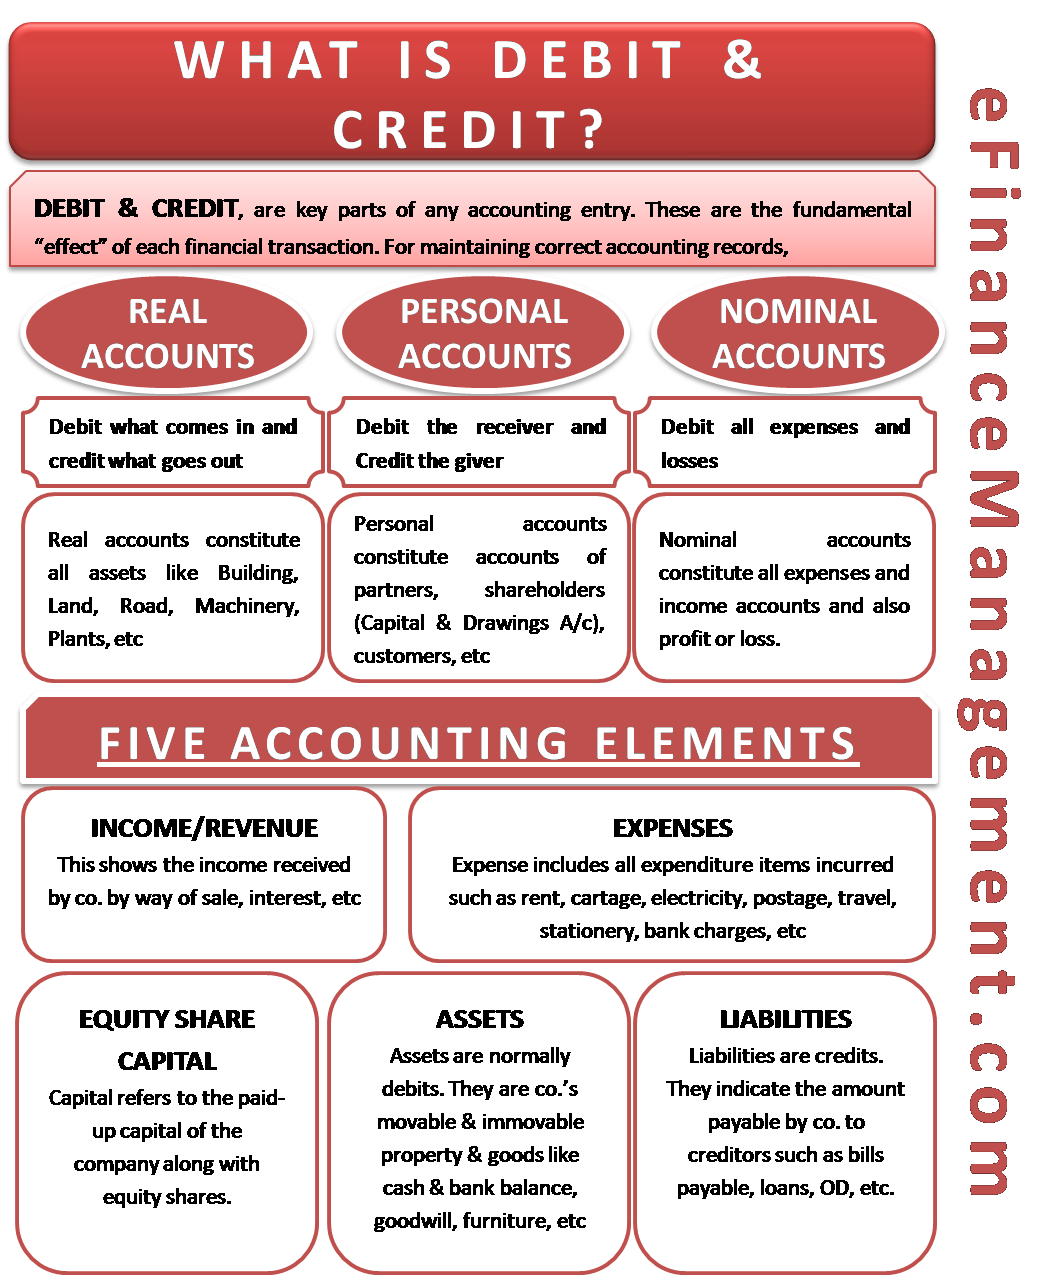 Debit and Credit